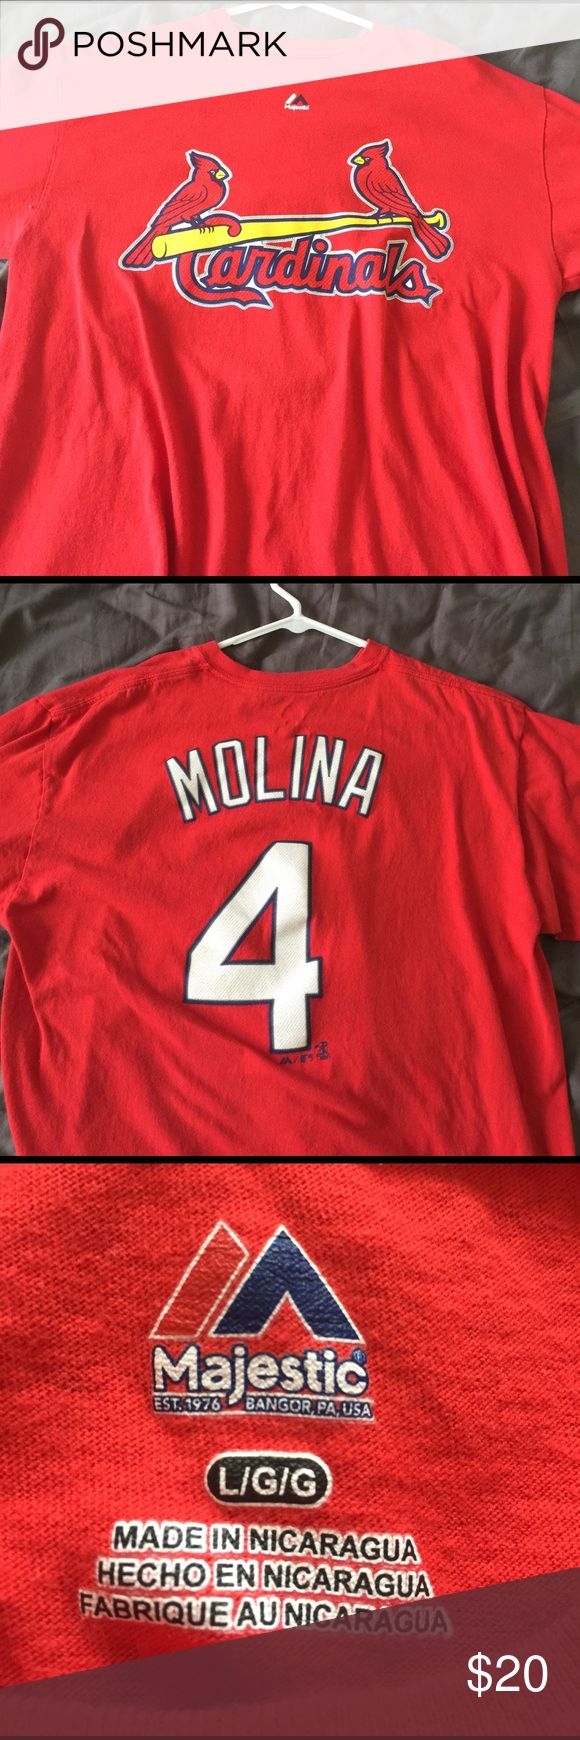 St. Louis Cardinals Yadier Molina Jersey Shirt Men's size large, great condition. Majestic Shirts Tees - Short Sleeve